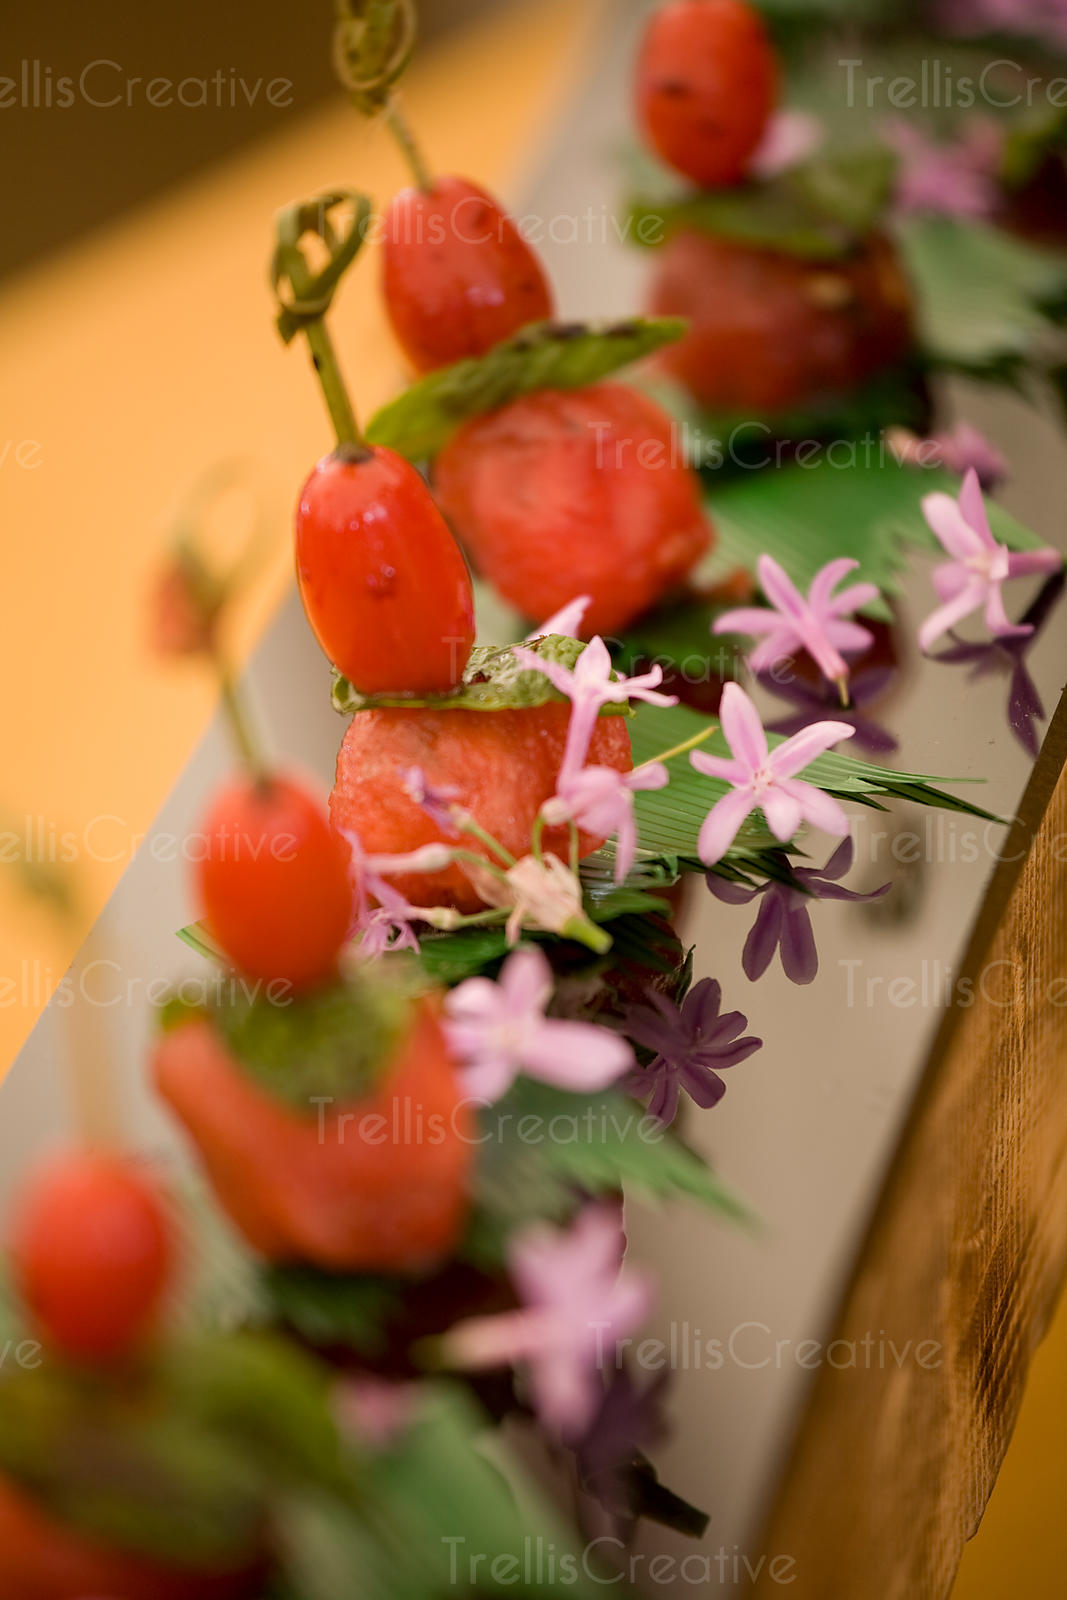 Watermelon and cherry tomato skewers